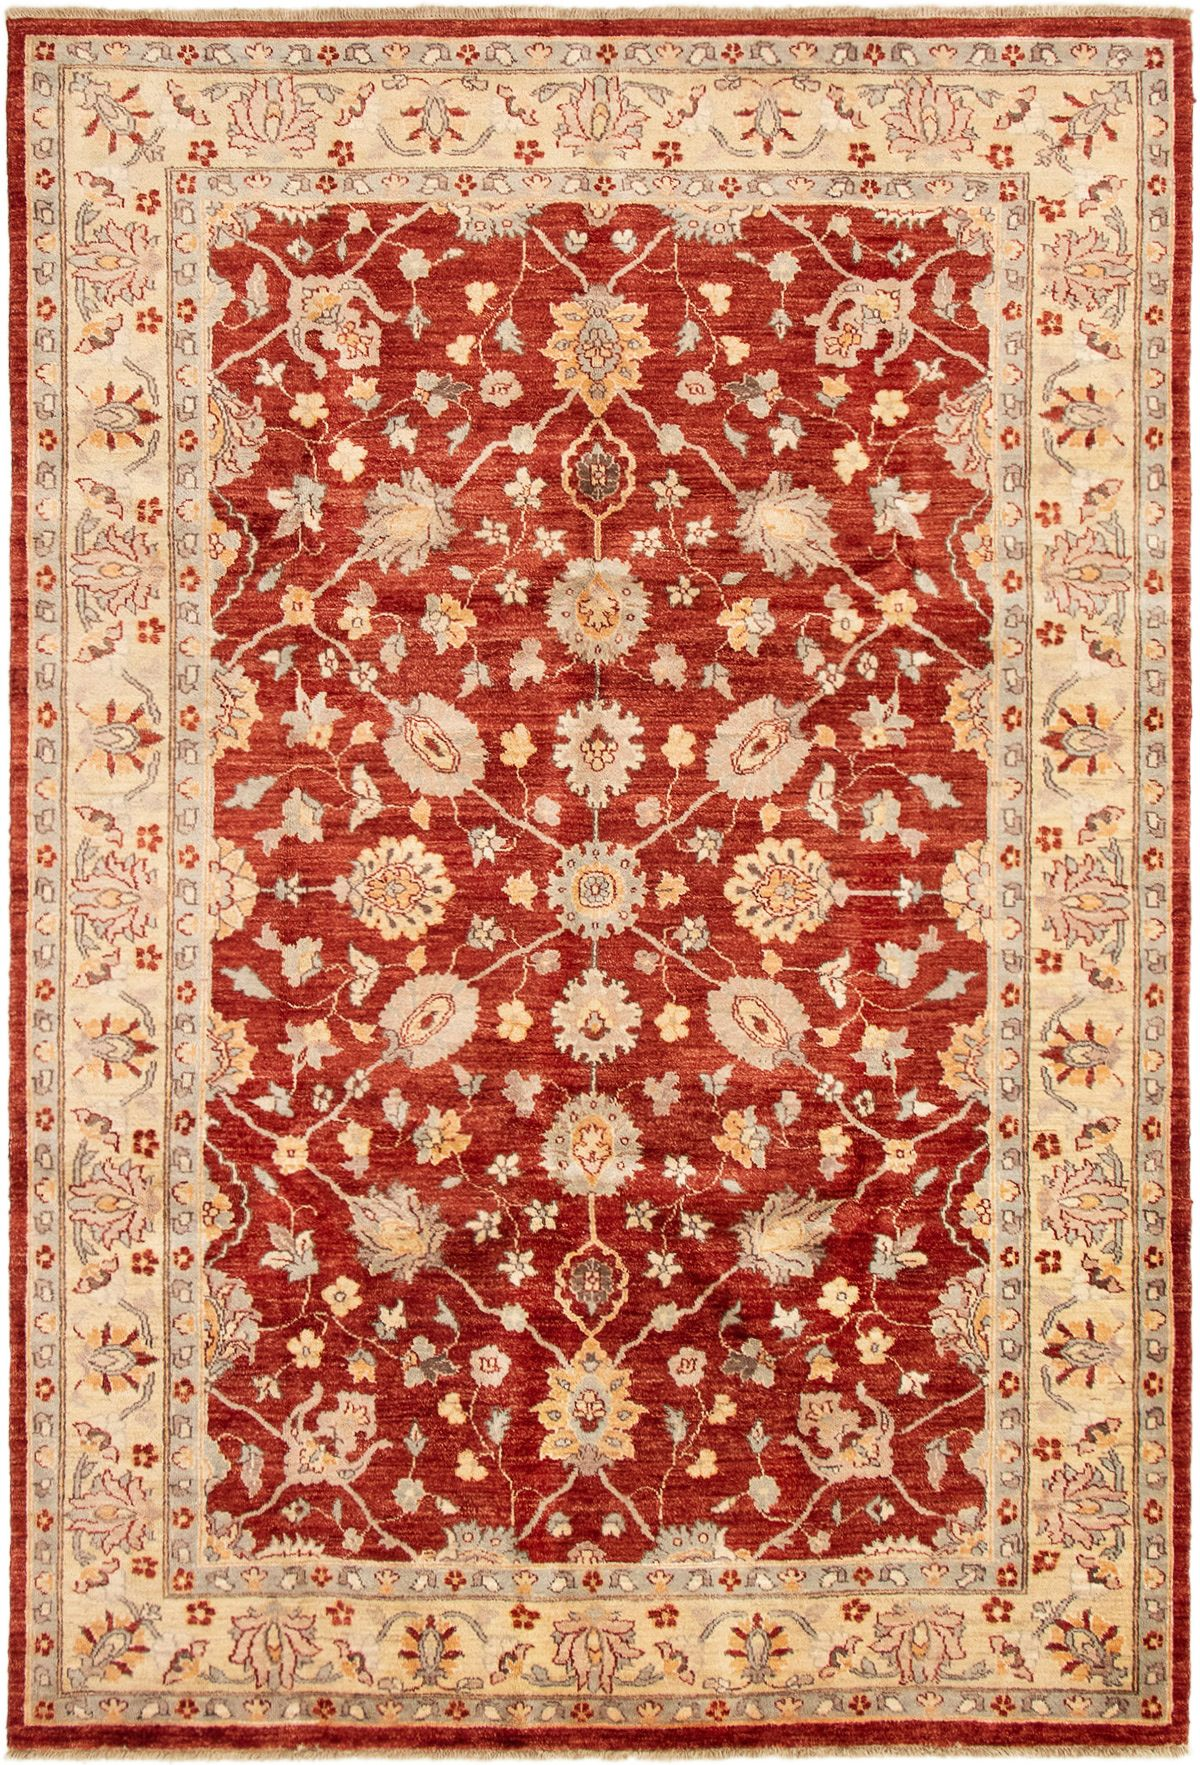 """Hand-knotted Chobi Finest Dark Red Wool Rug 6'3"""" x 9'3"""" Size: 6'3"""" x 9'3"""""""